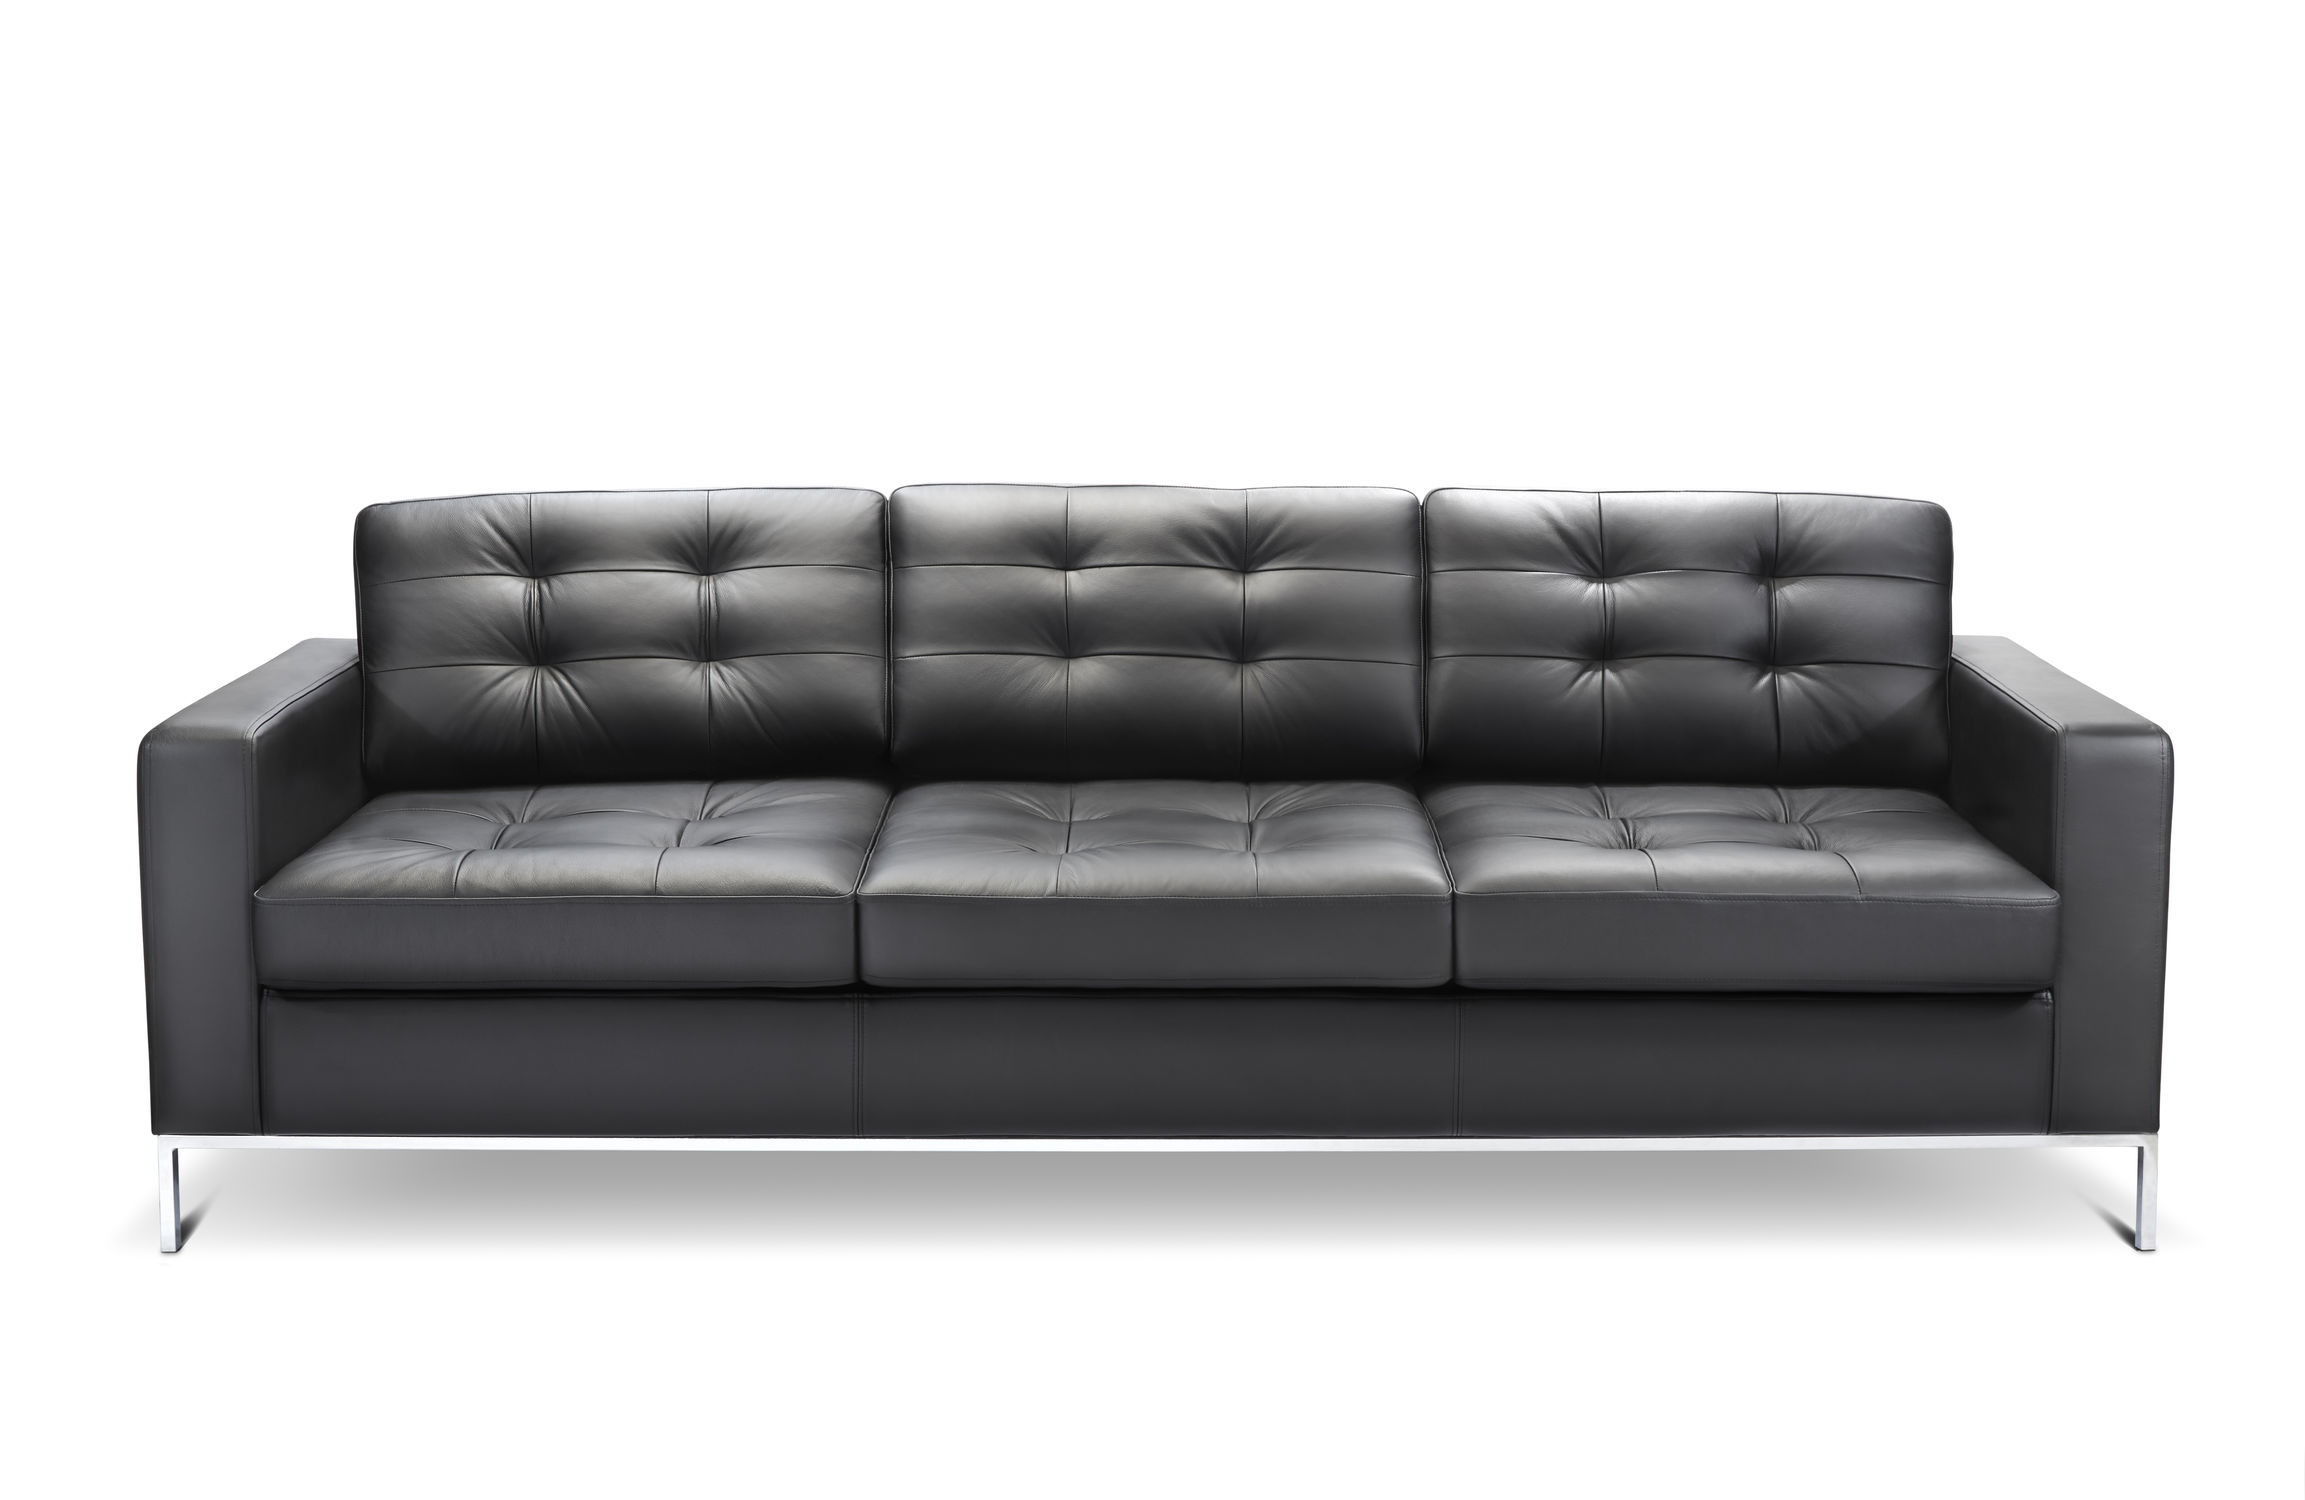 Minimalist design sofa leather 2 seater 3 seater CHECK by